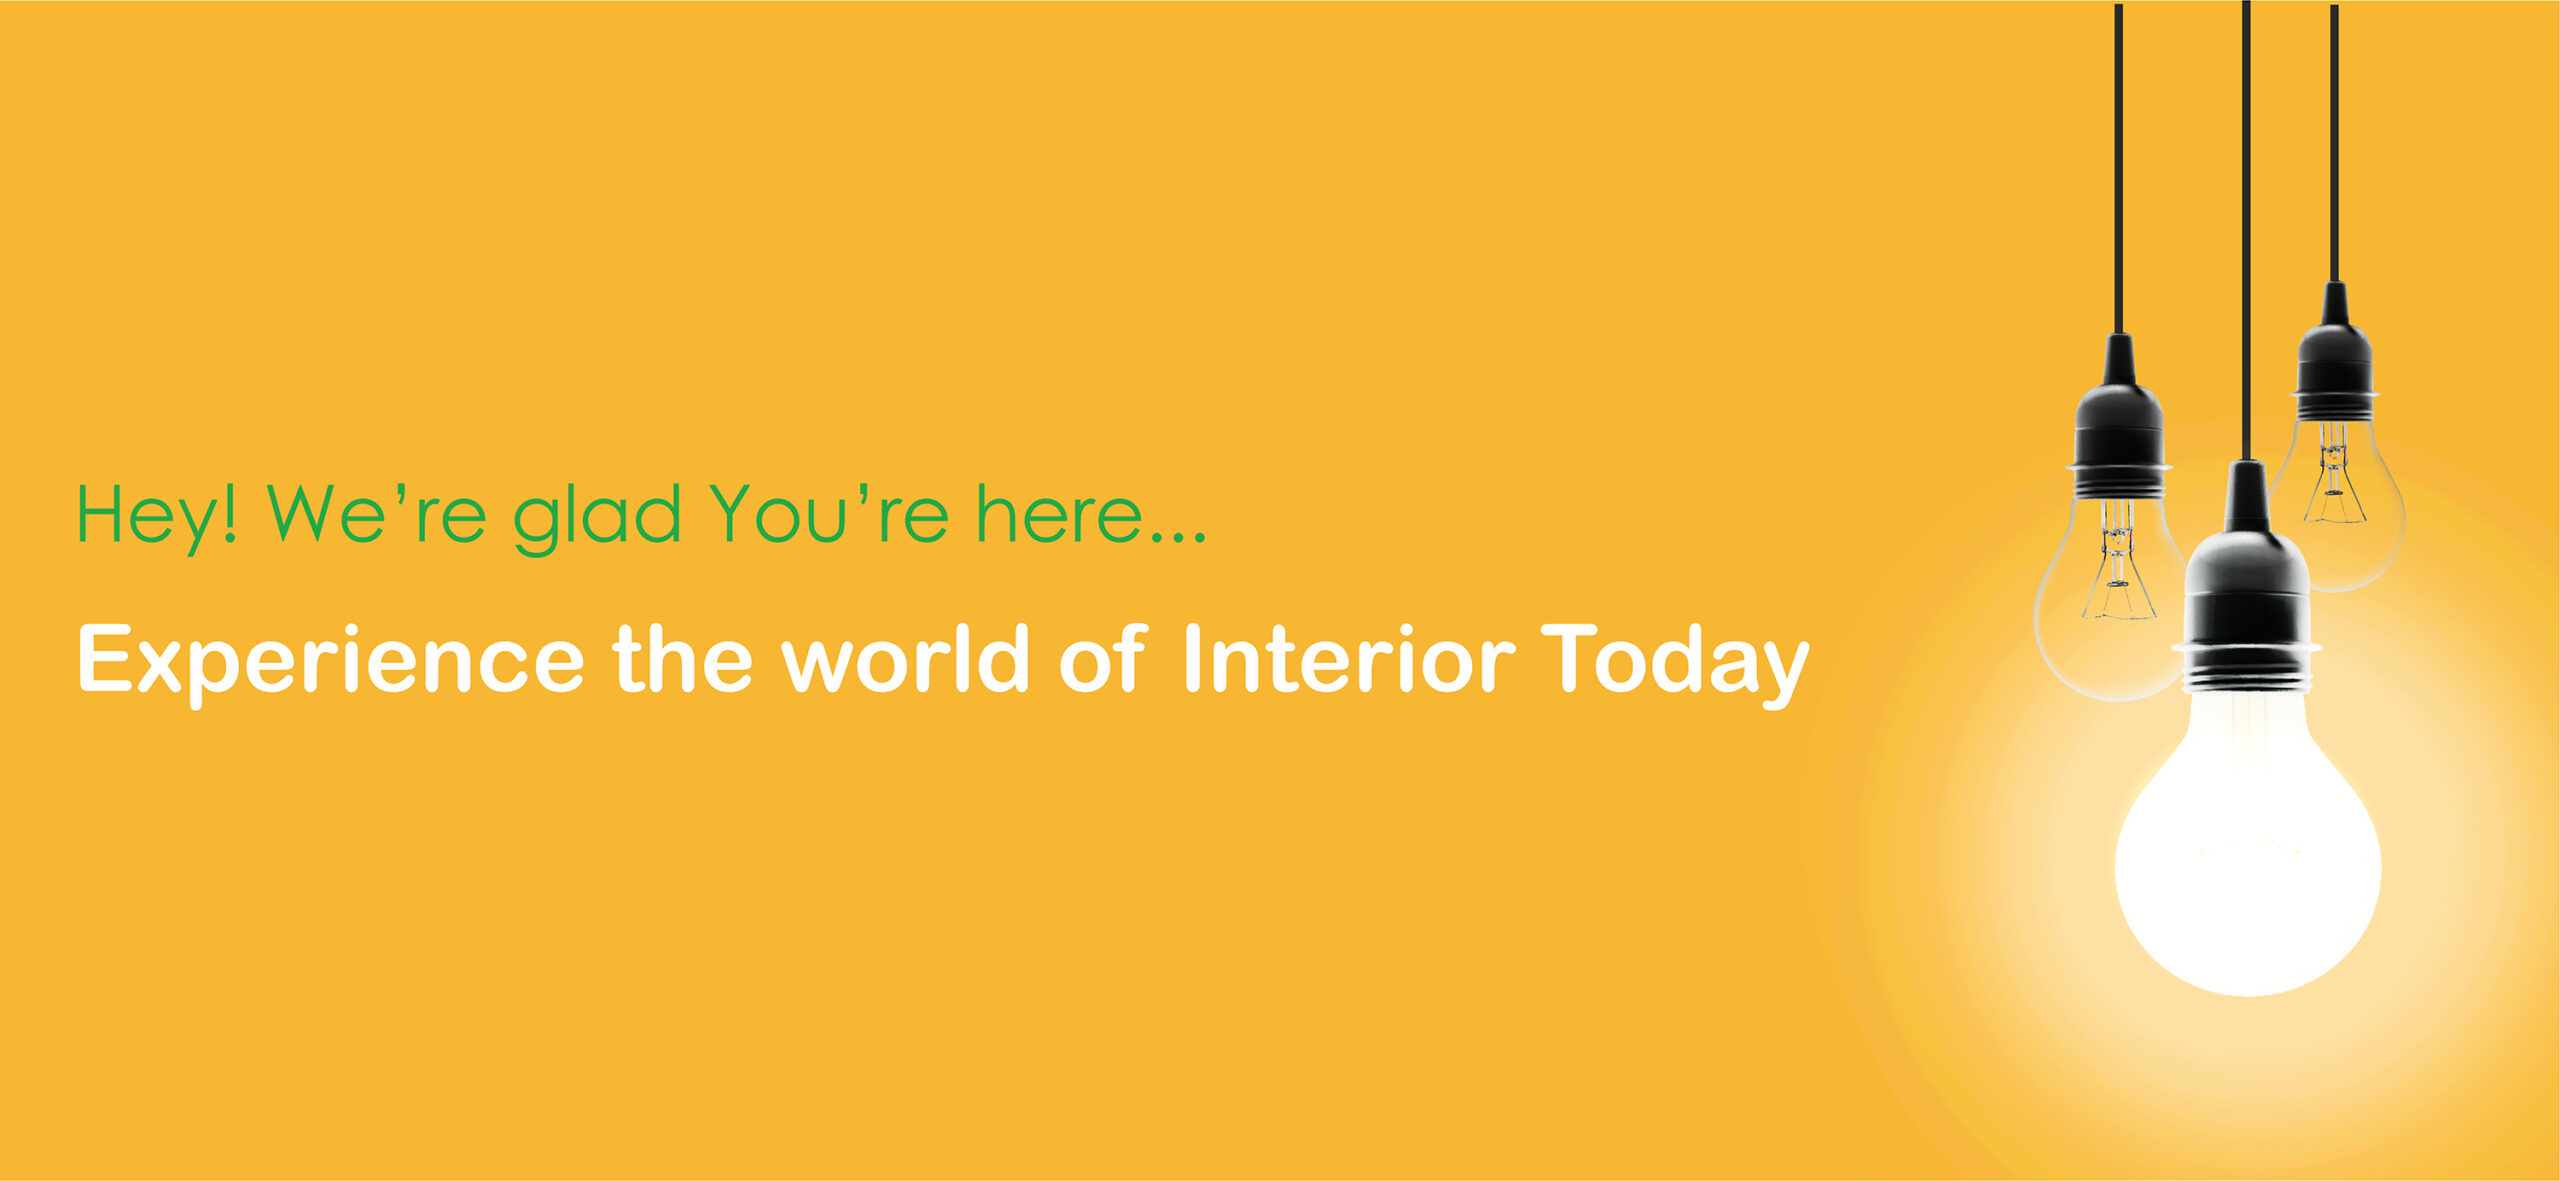 About Interior Today